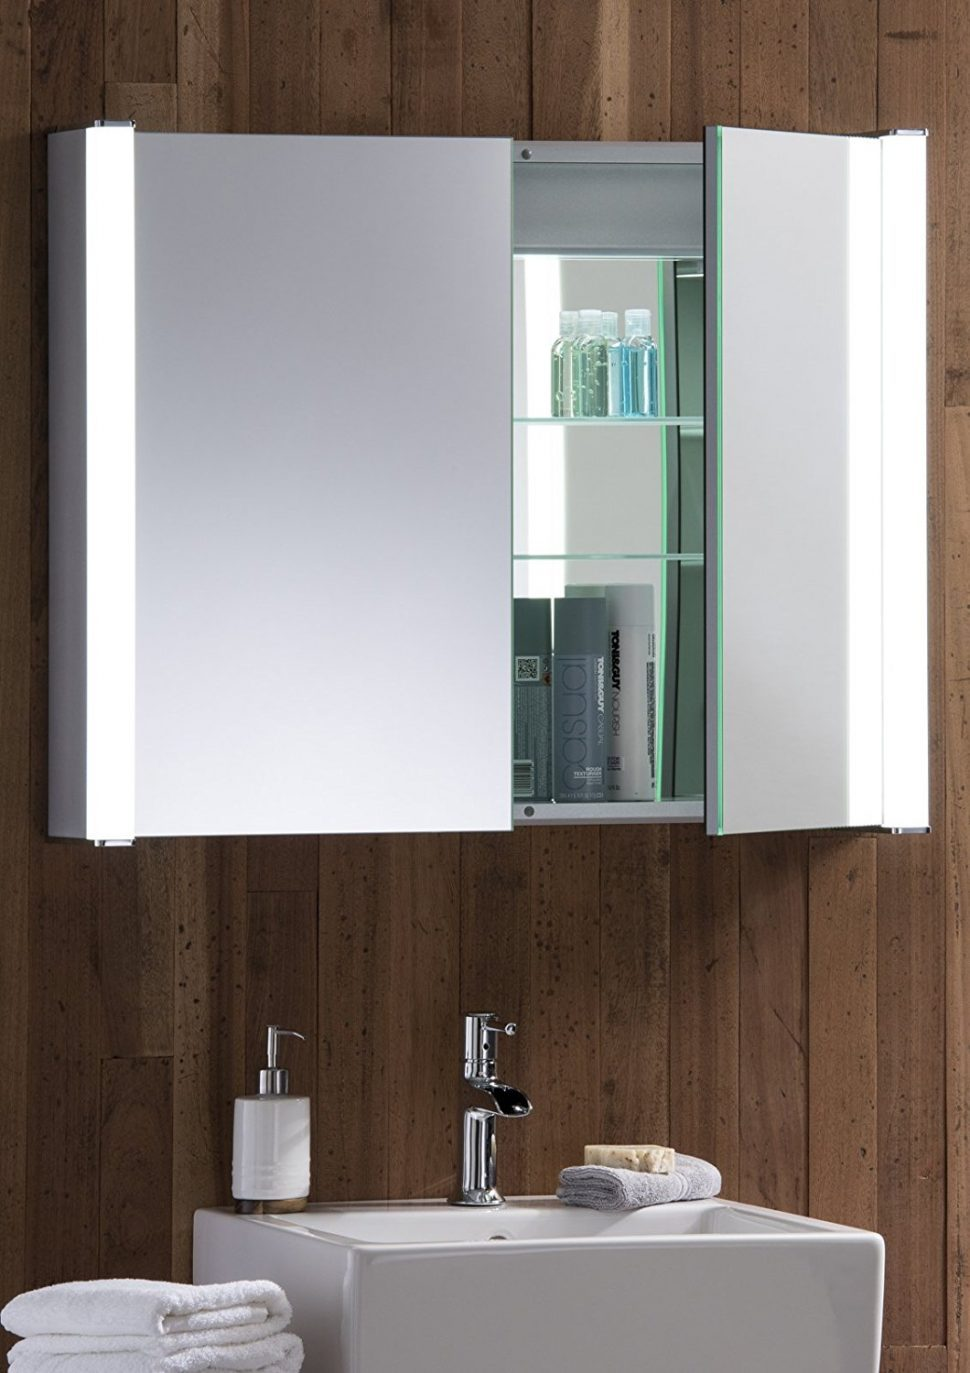 Mirrors: Lighted Wall Mirror | Wall Mounted Makeup Mirror Lighted ...